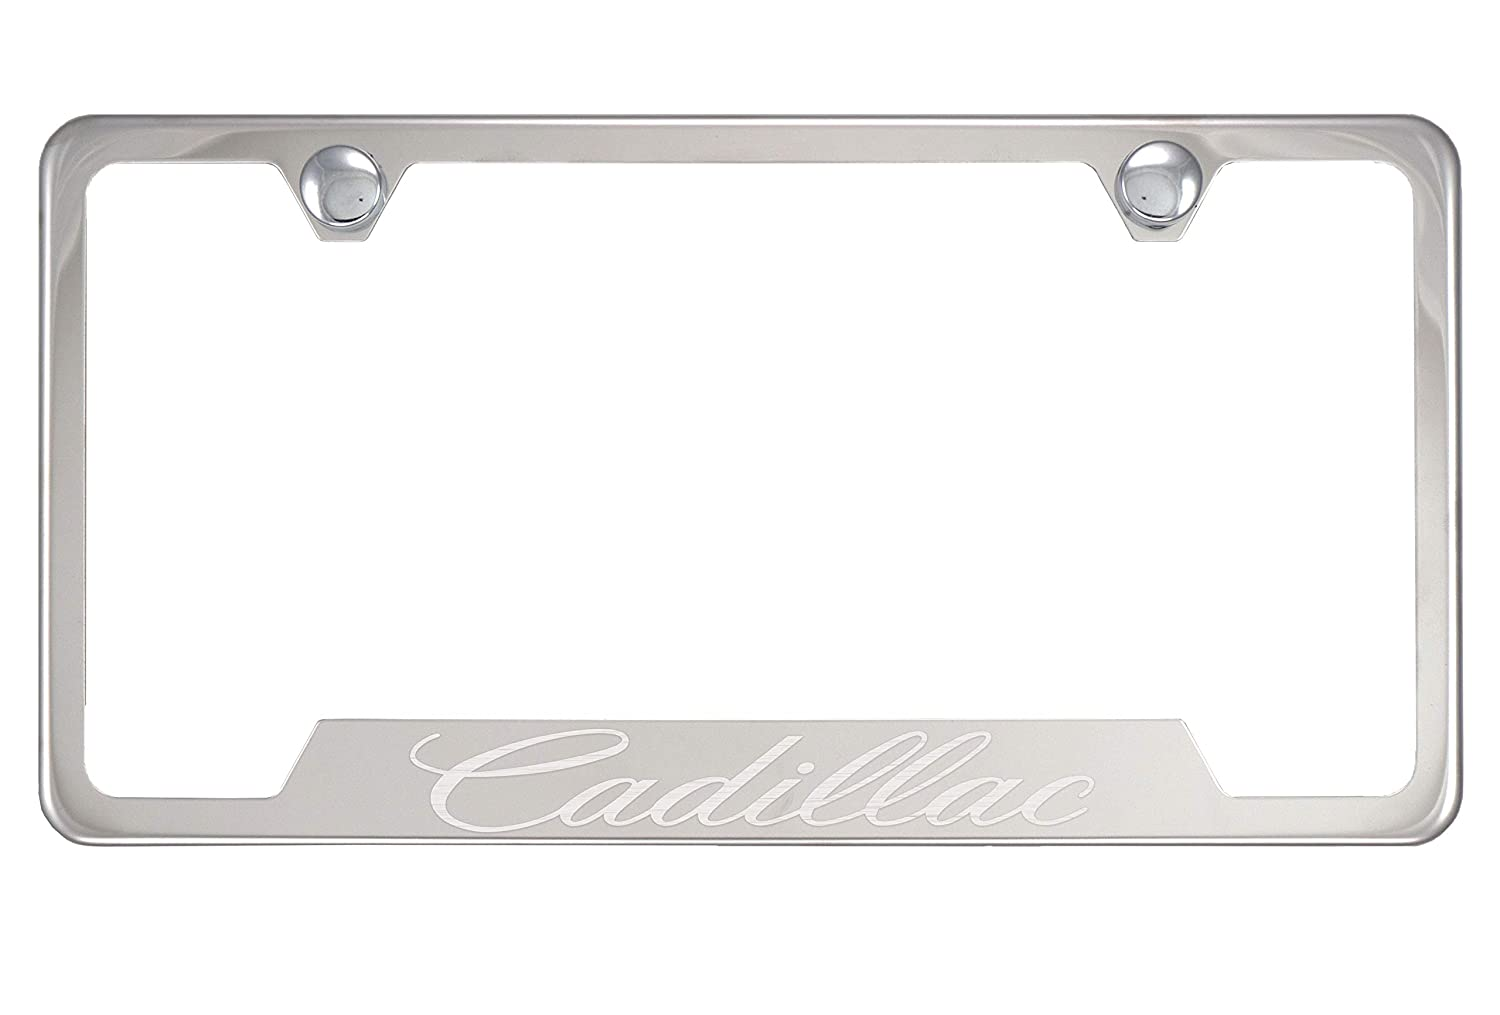 Fit Cadillac Polished Chrome Stainless Steel License Plate Frame with Caps